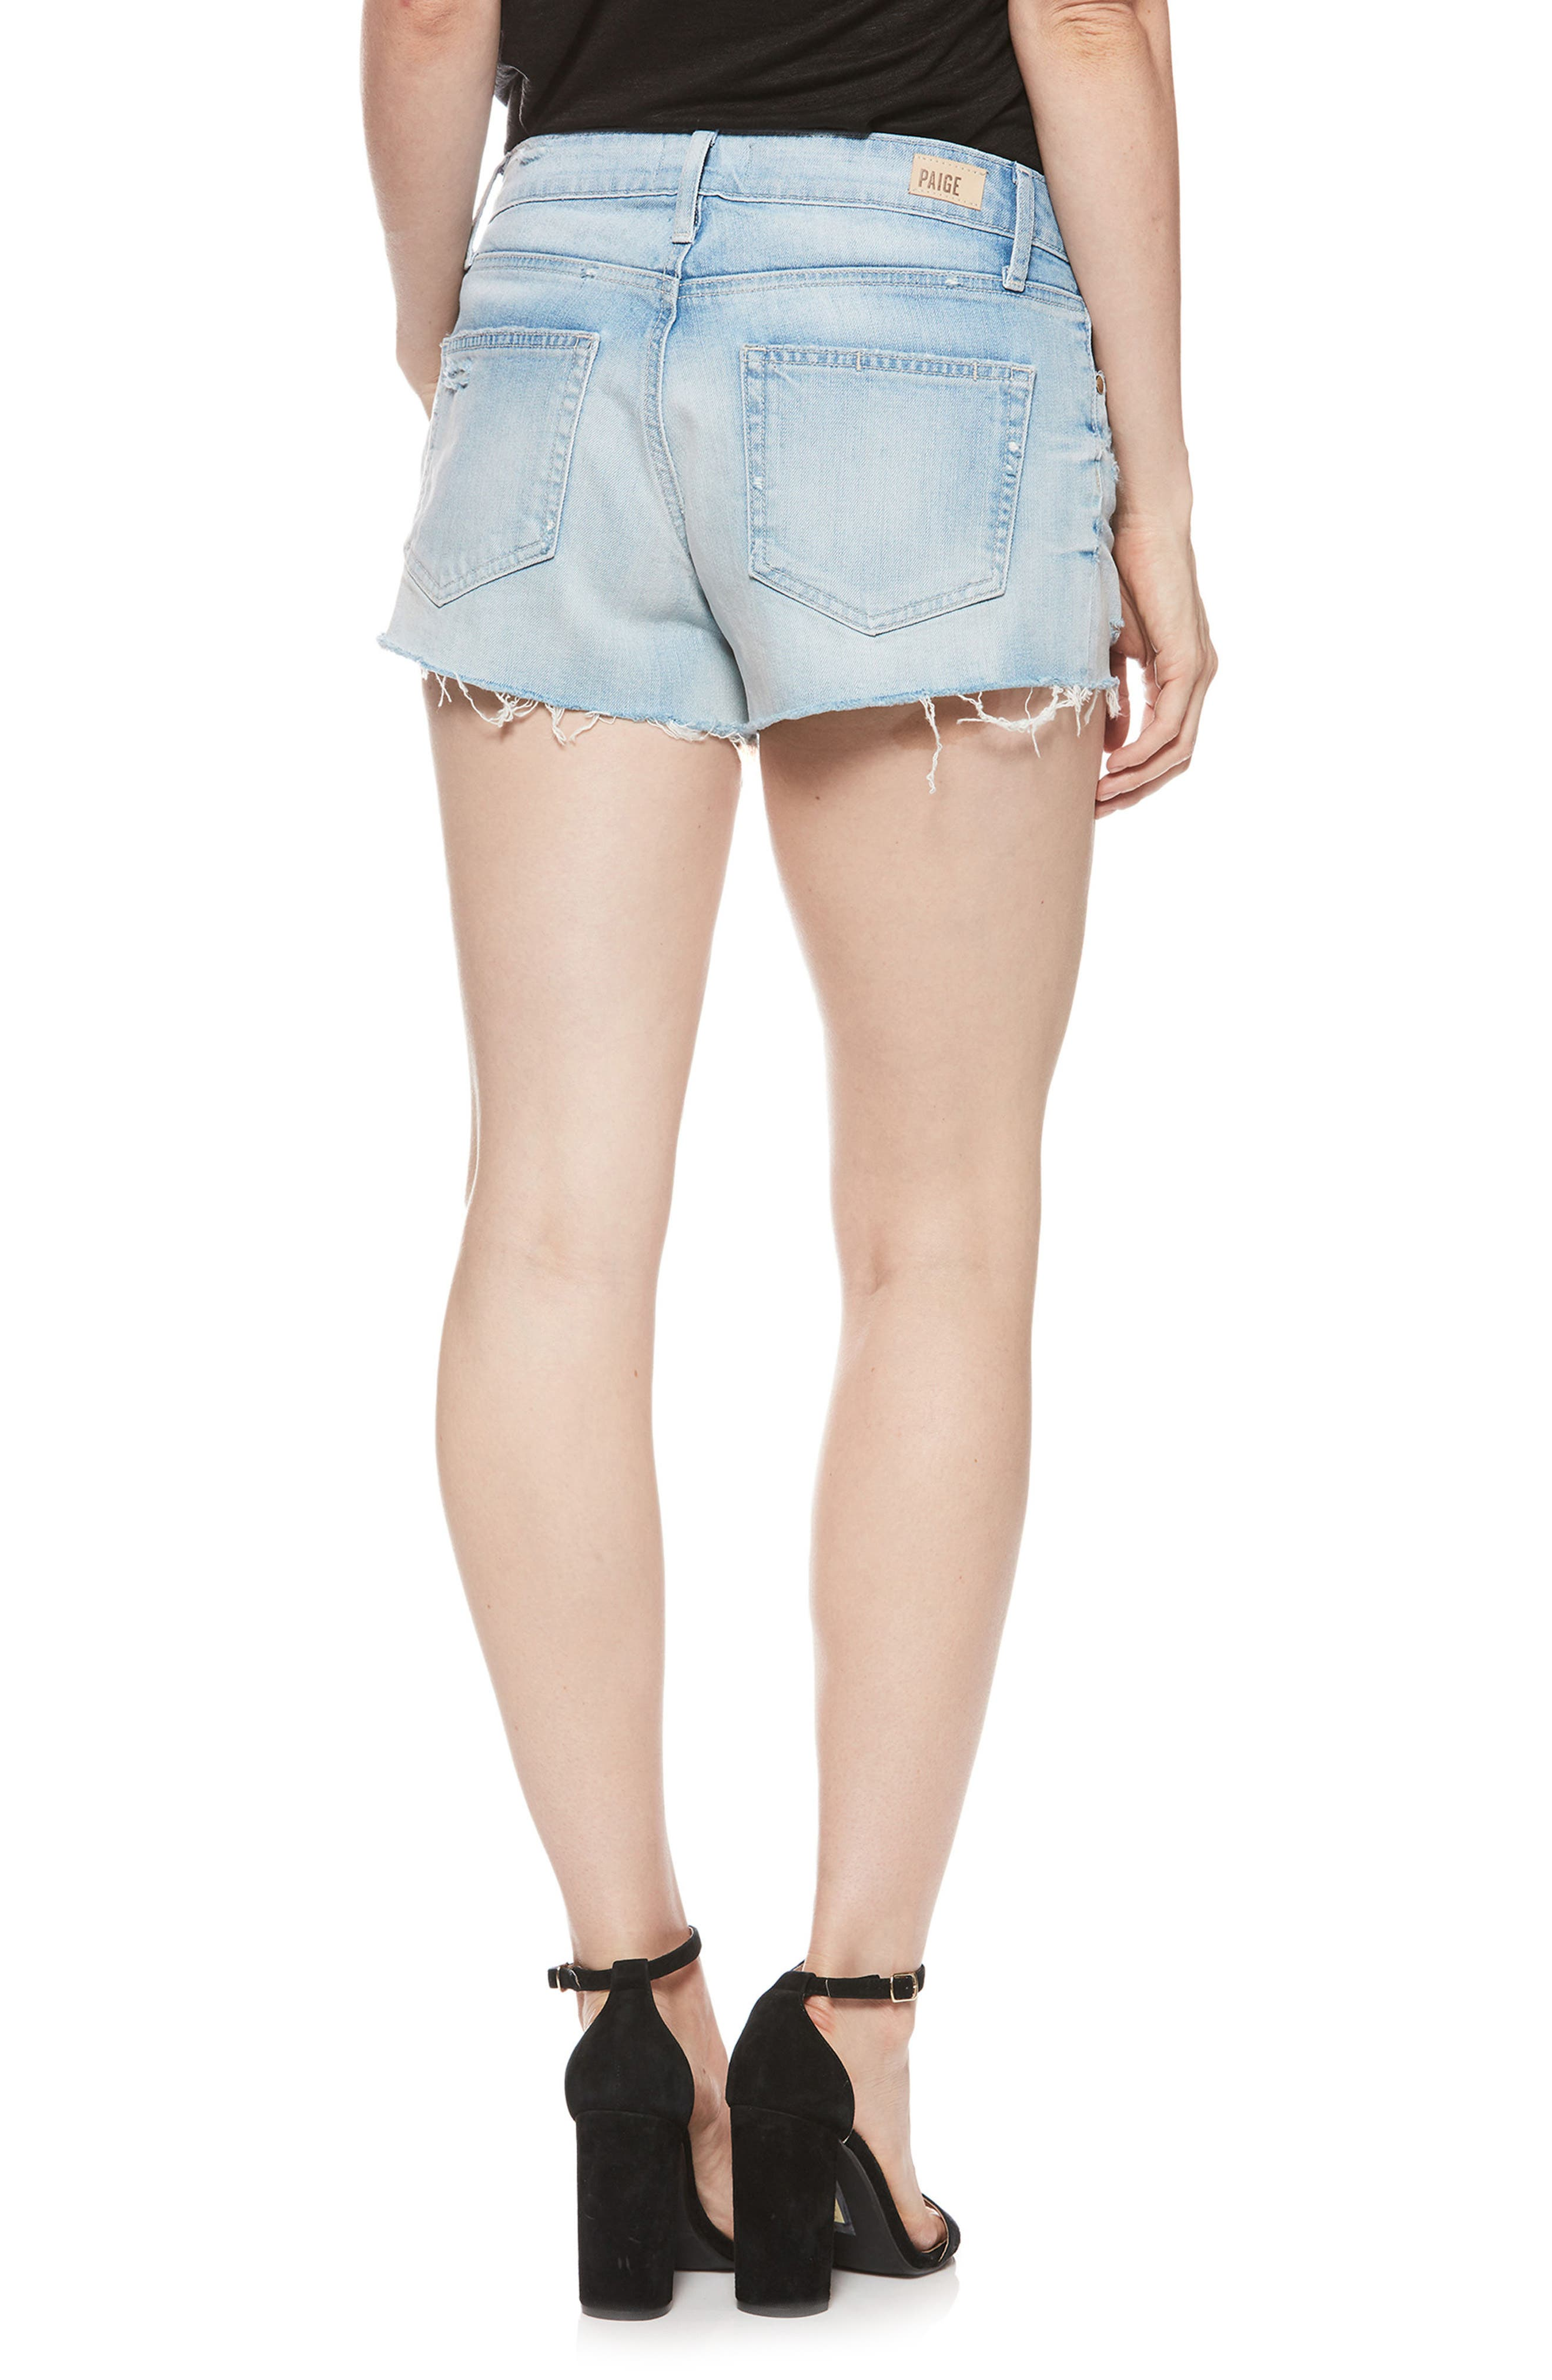 Emmit Relaxed Denim Shorts,                             Alternate thumbnail 2, color,                             400